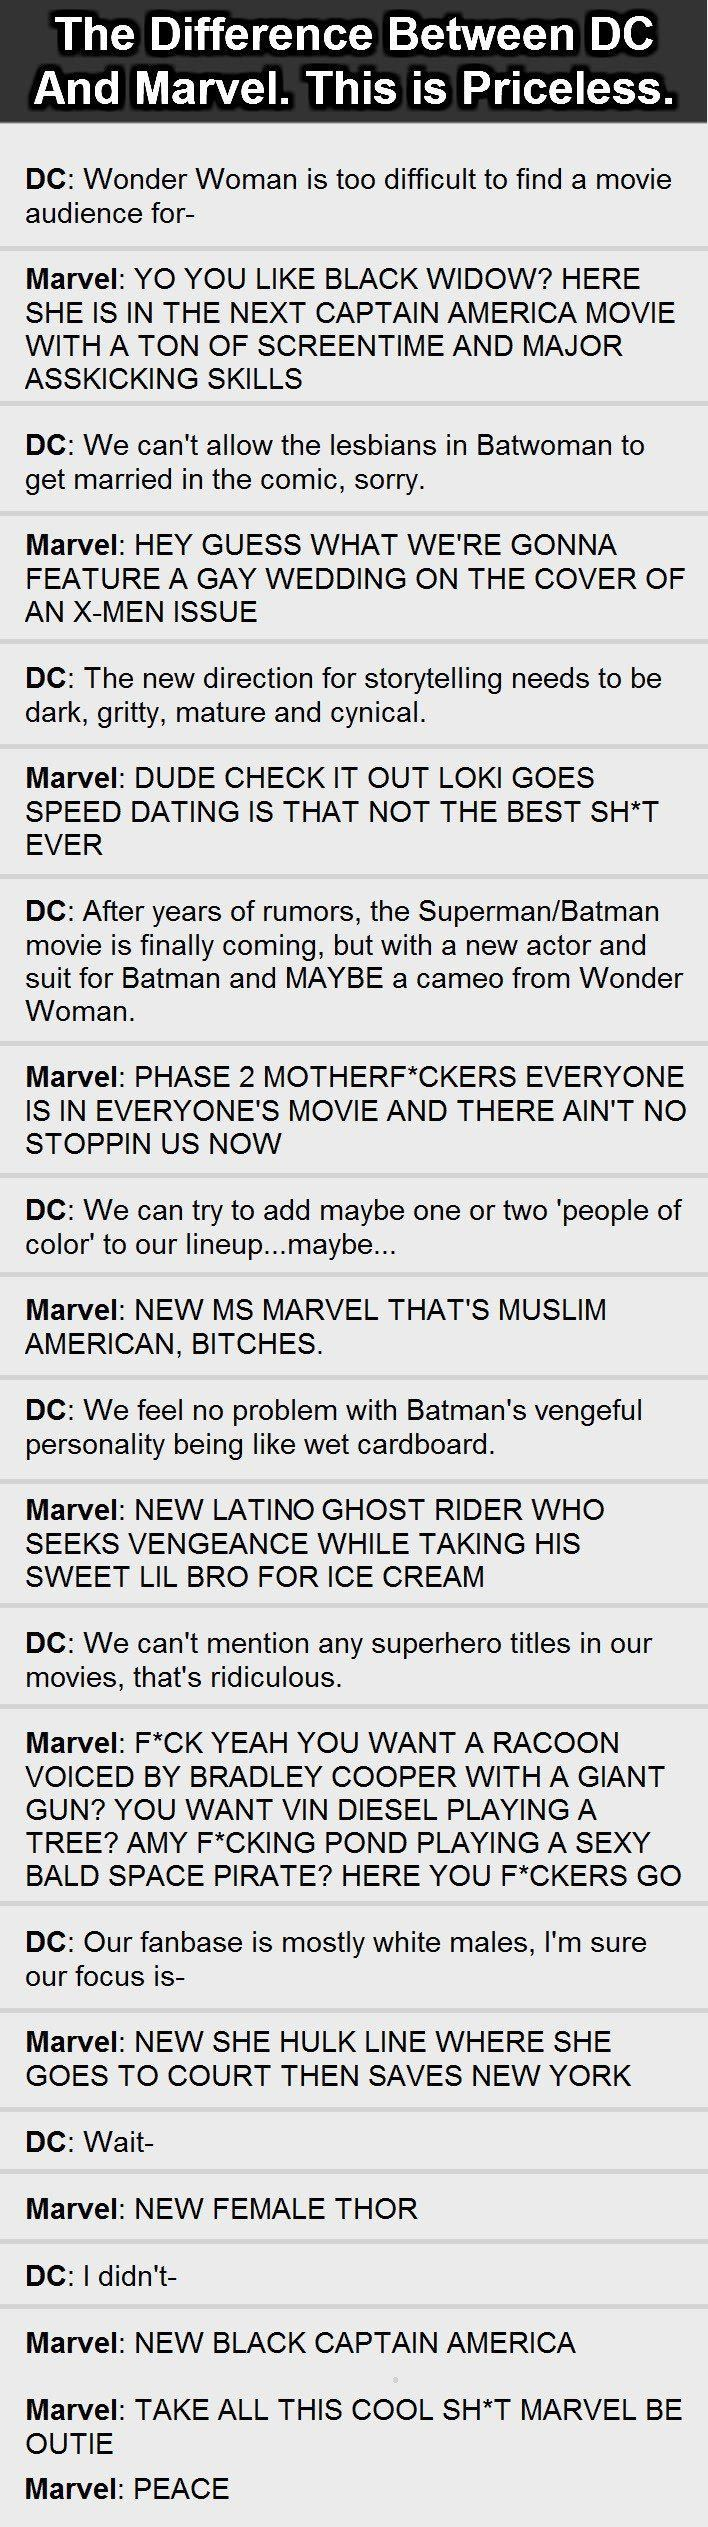 The Difference Between DC and Marvel, hilariously told